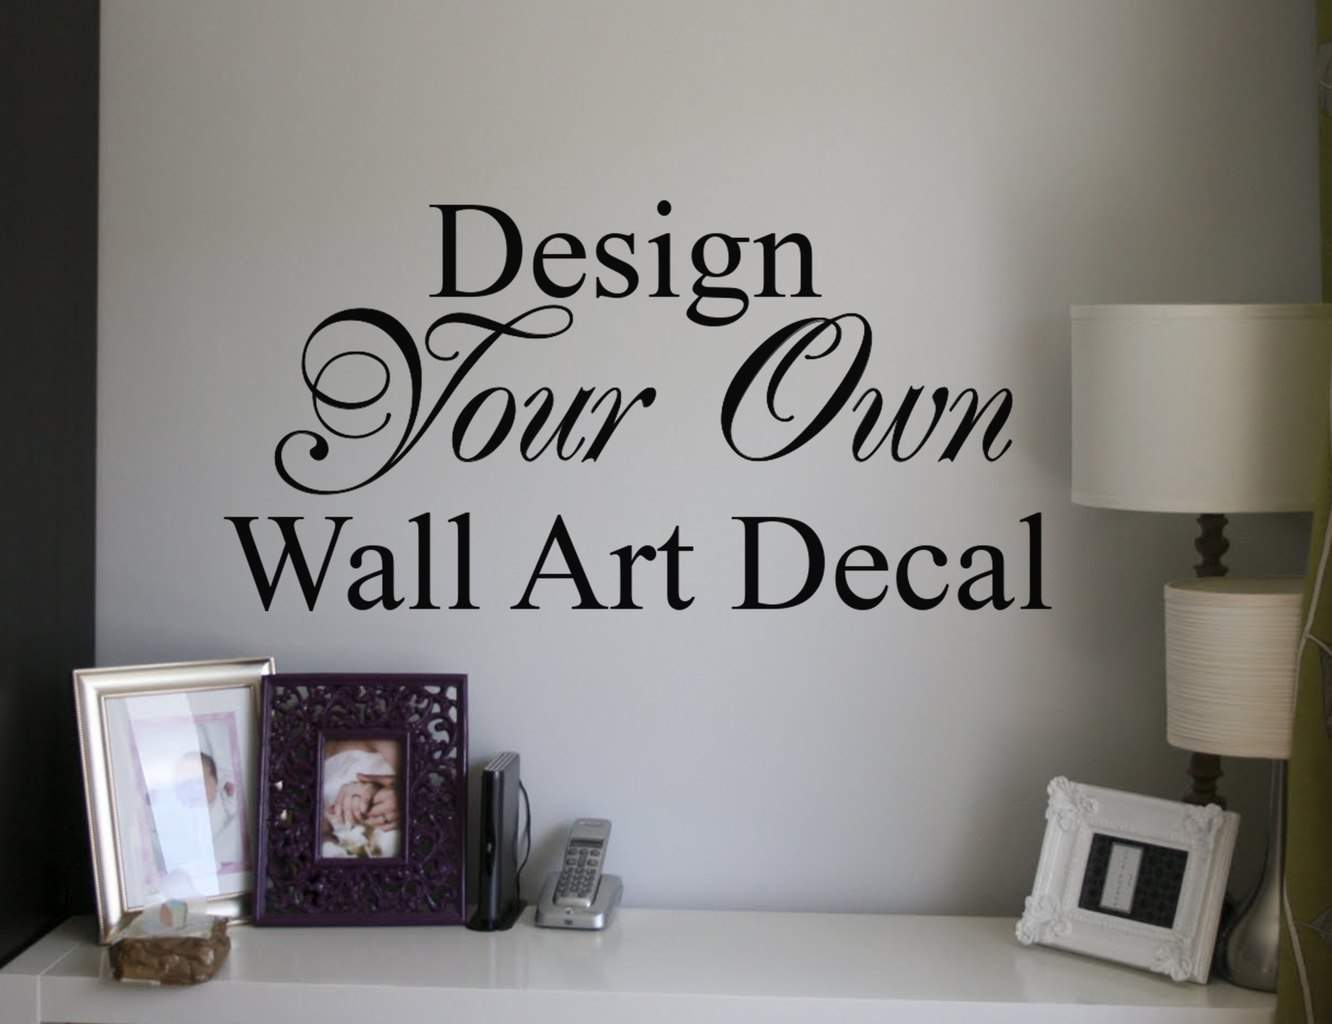 Design your own quote custom wall art decal sticker for Create your own wall mural photo